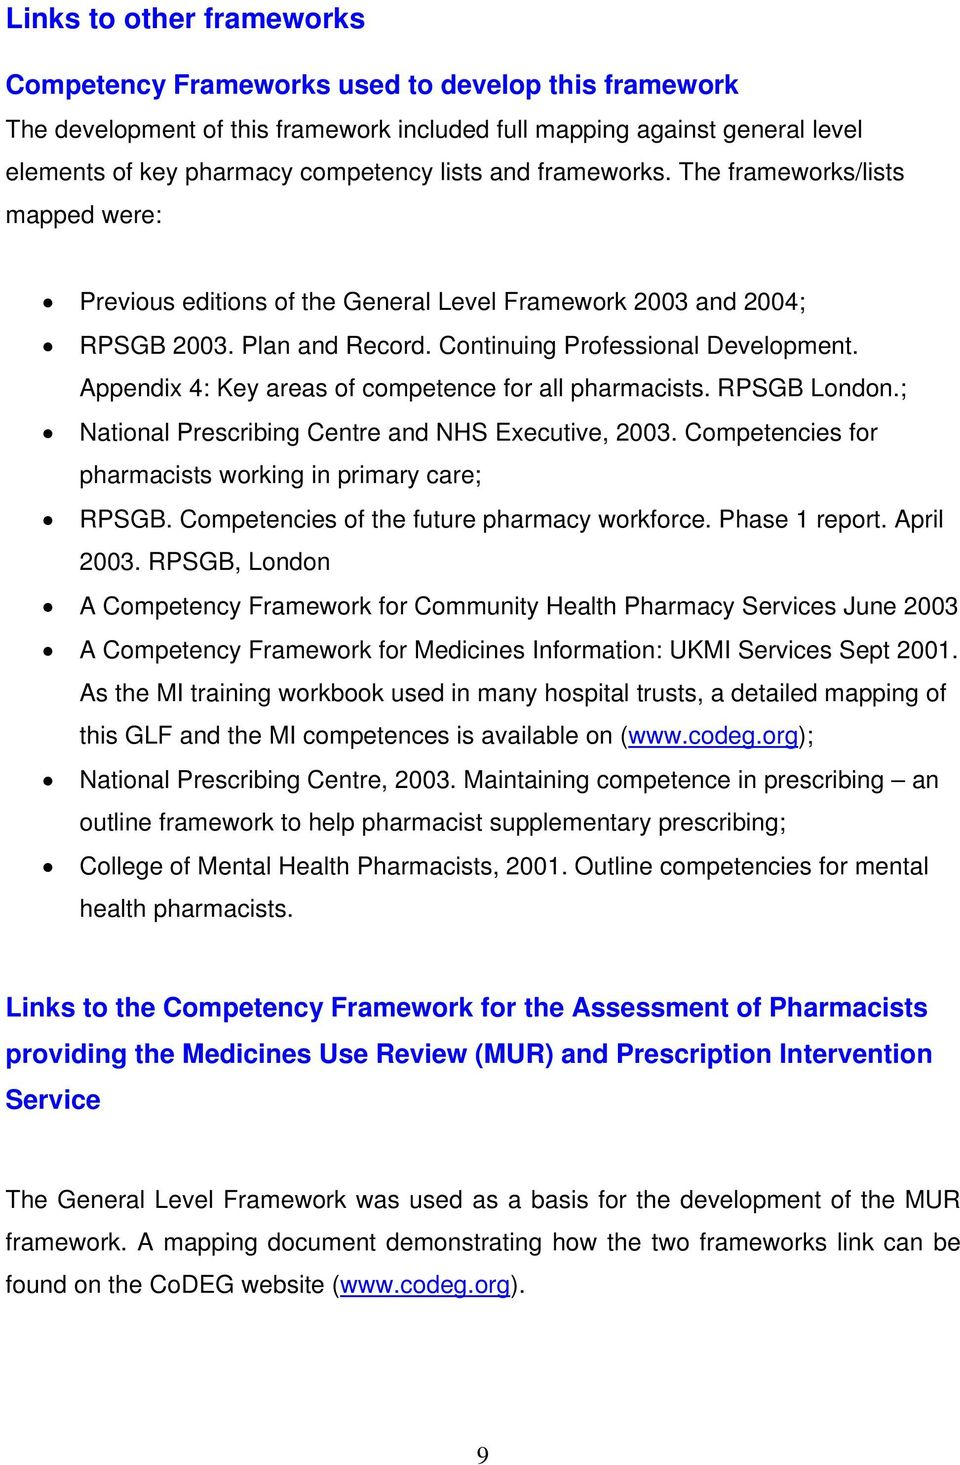 Appendix 4: Key res of competence for ll phrmcists. RPSGB London.; Ntionl Prescribing Centre nd NHS Executive, 2003. Competencies for phrmcists working in primry cre; RPSGB.